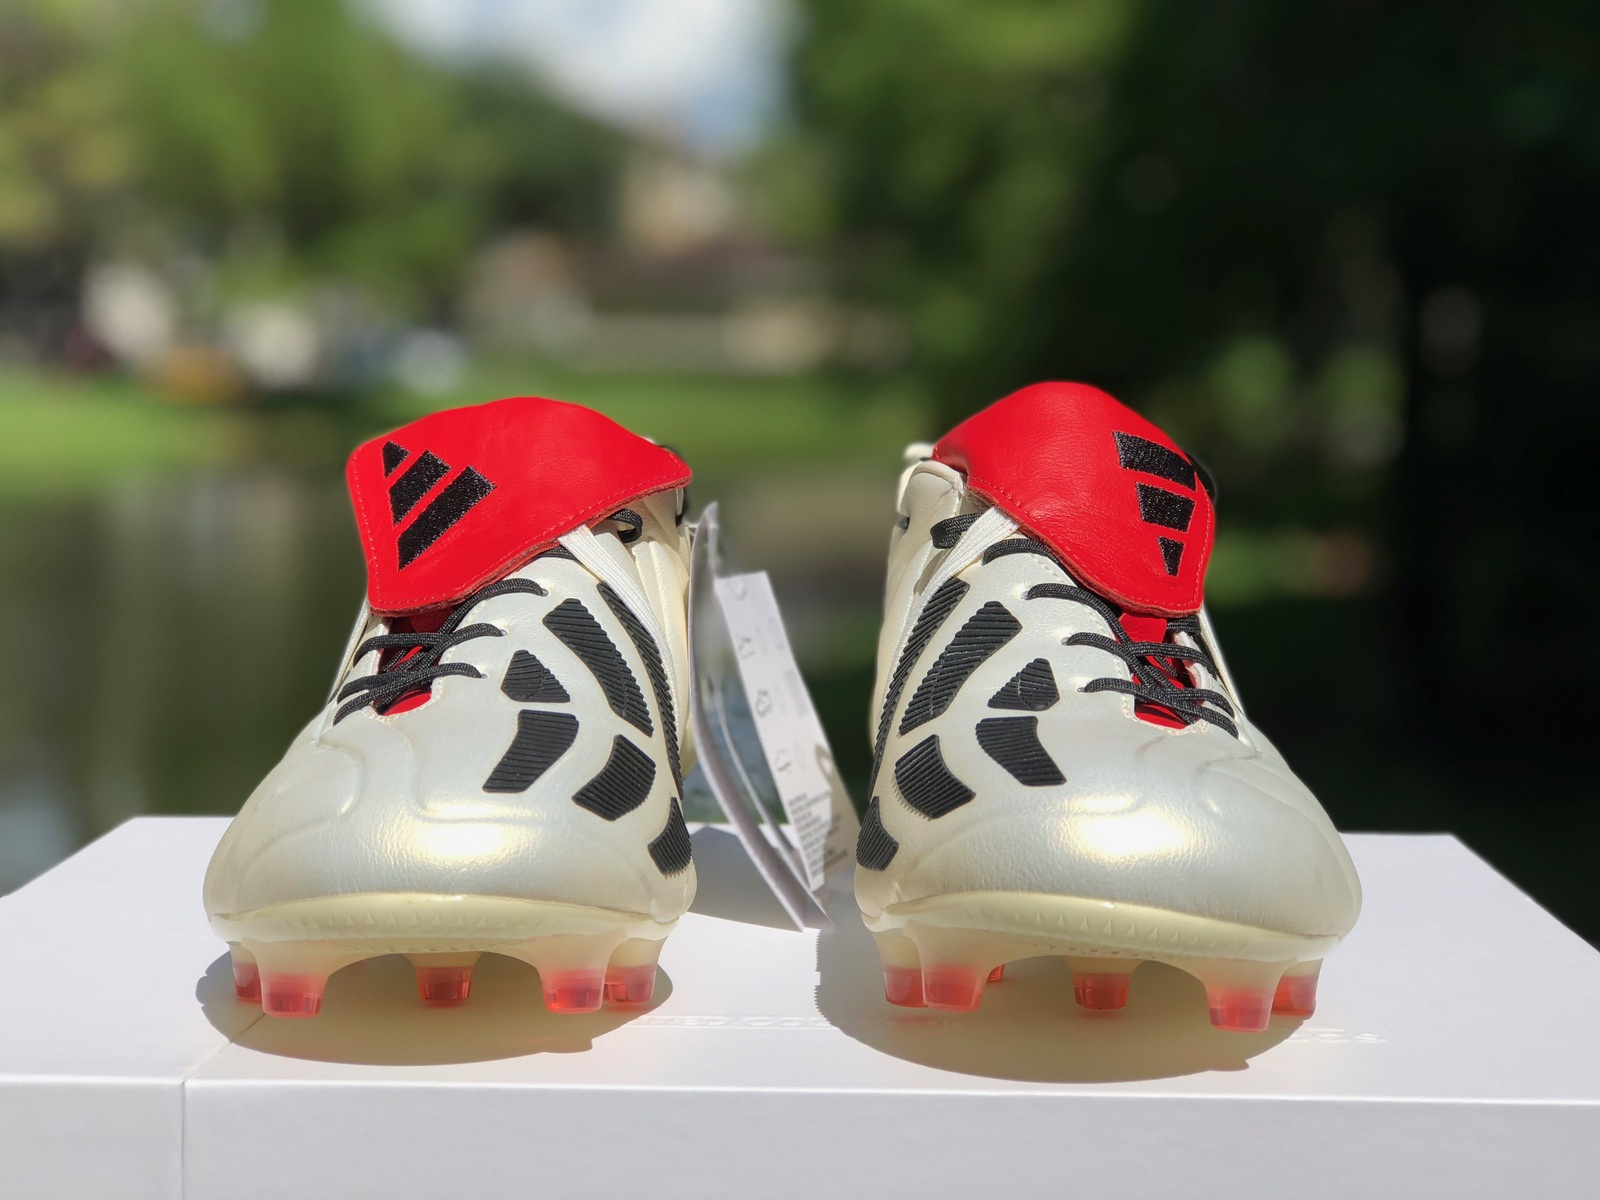 045a1cab451d Adidas Predator Mania FG Champagne Remake and 50 similar items